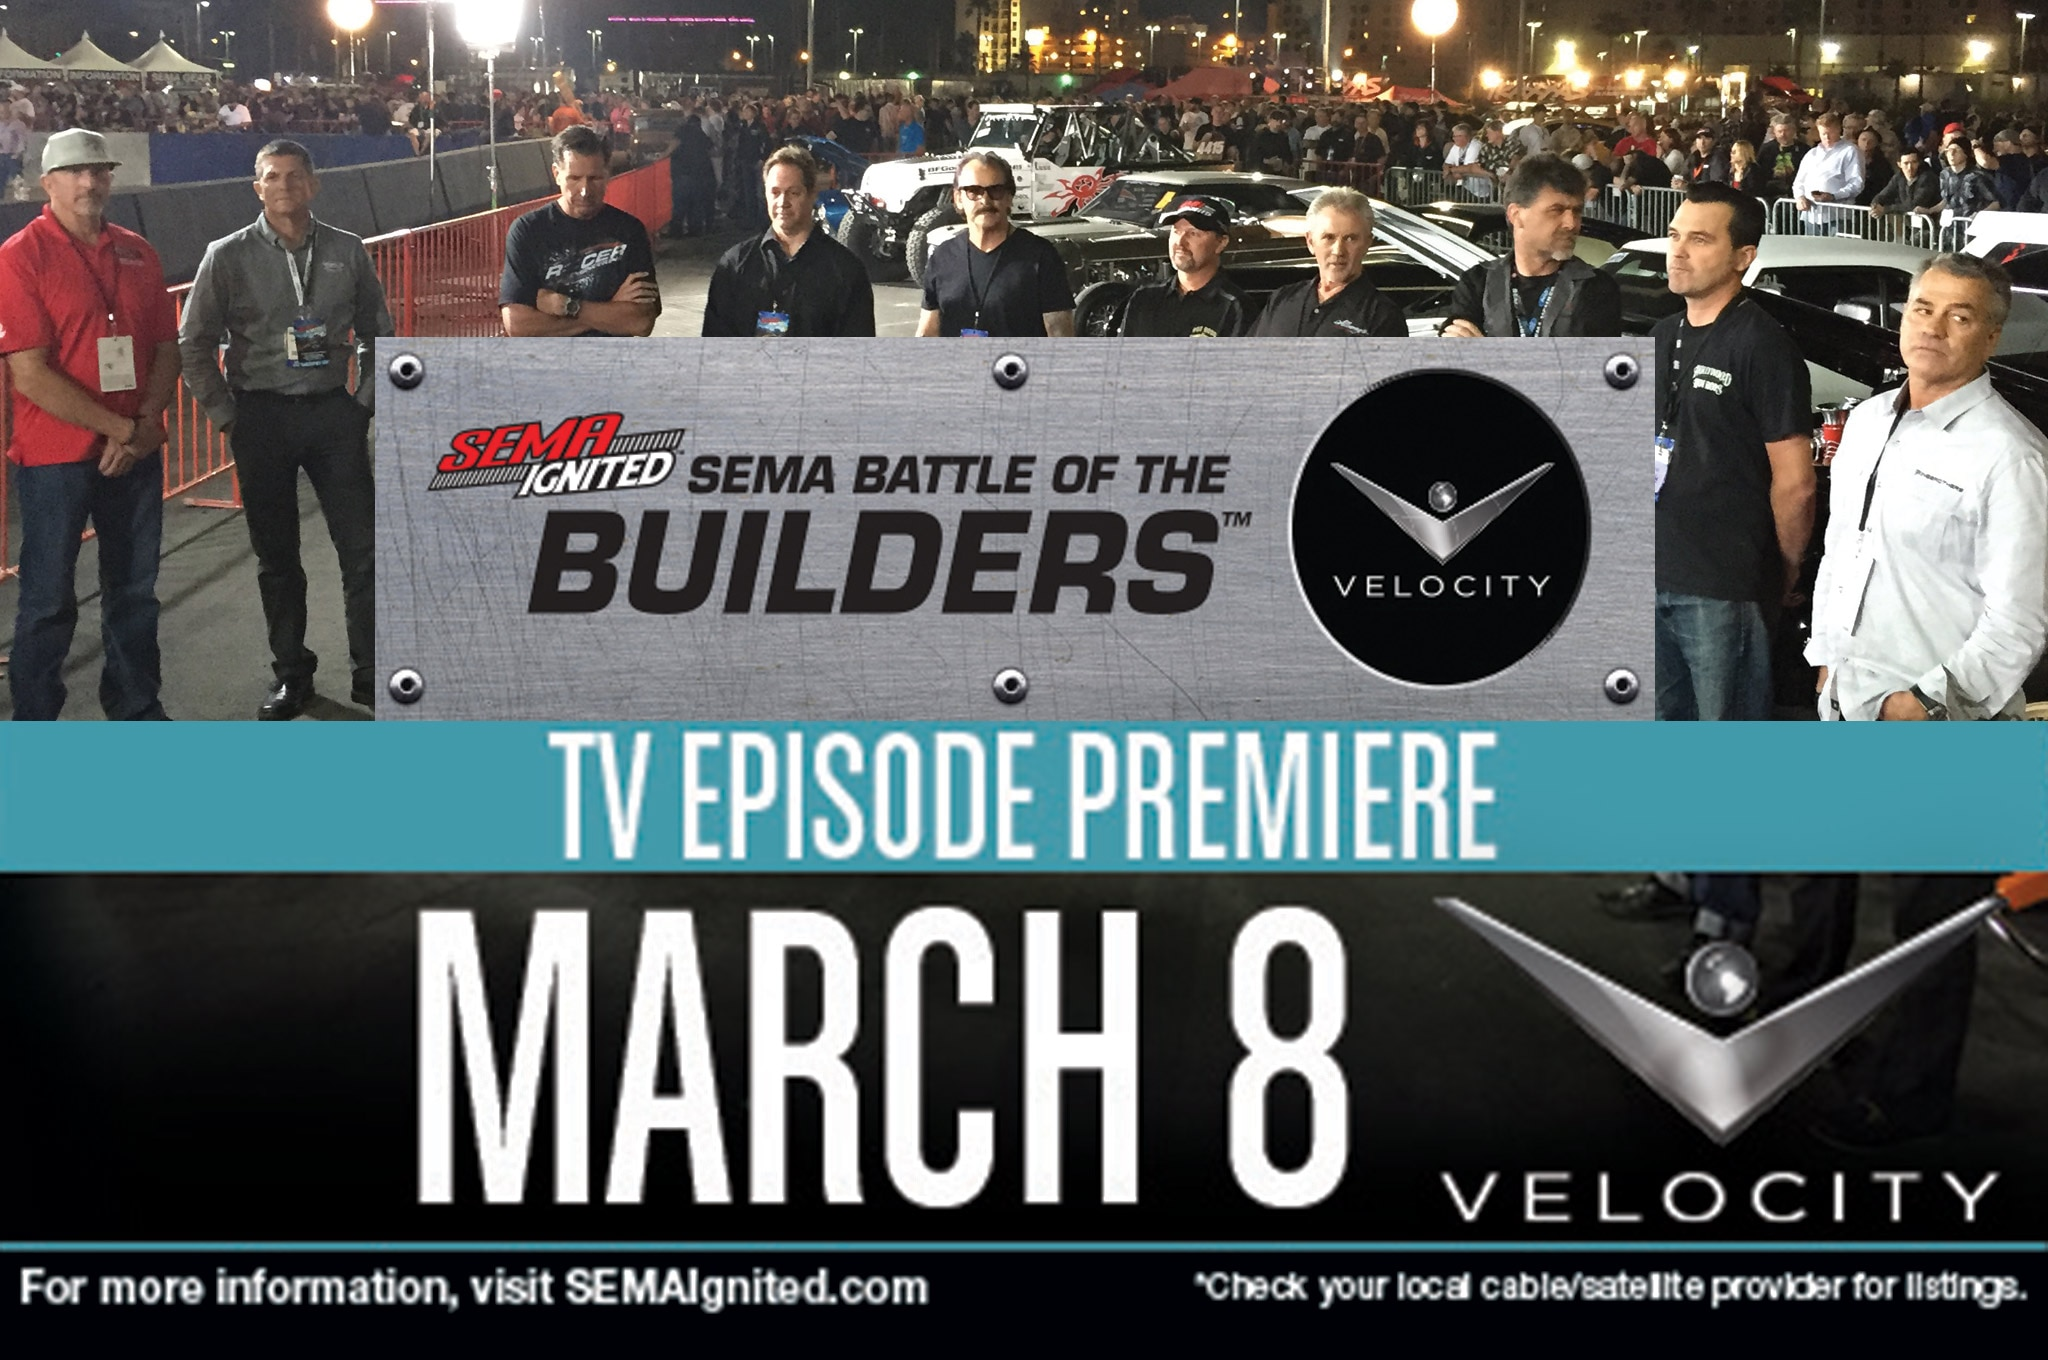 sema battle of the builders velocity